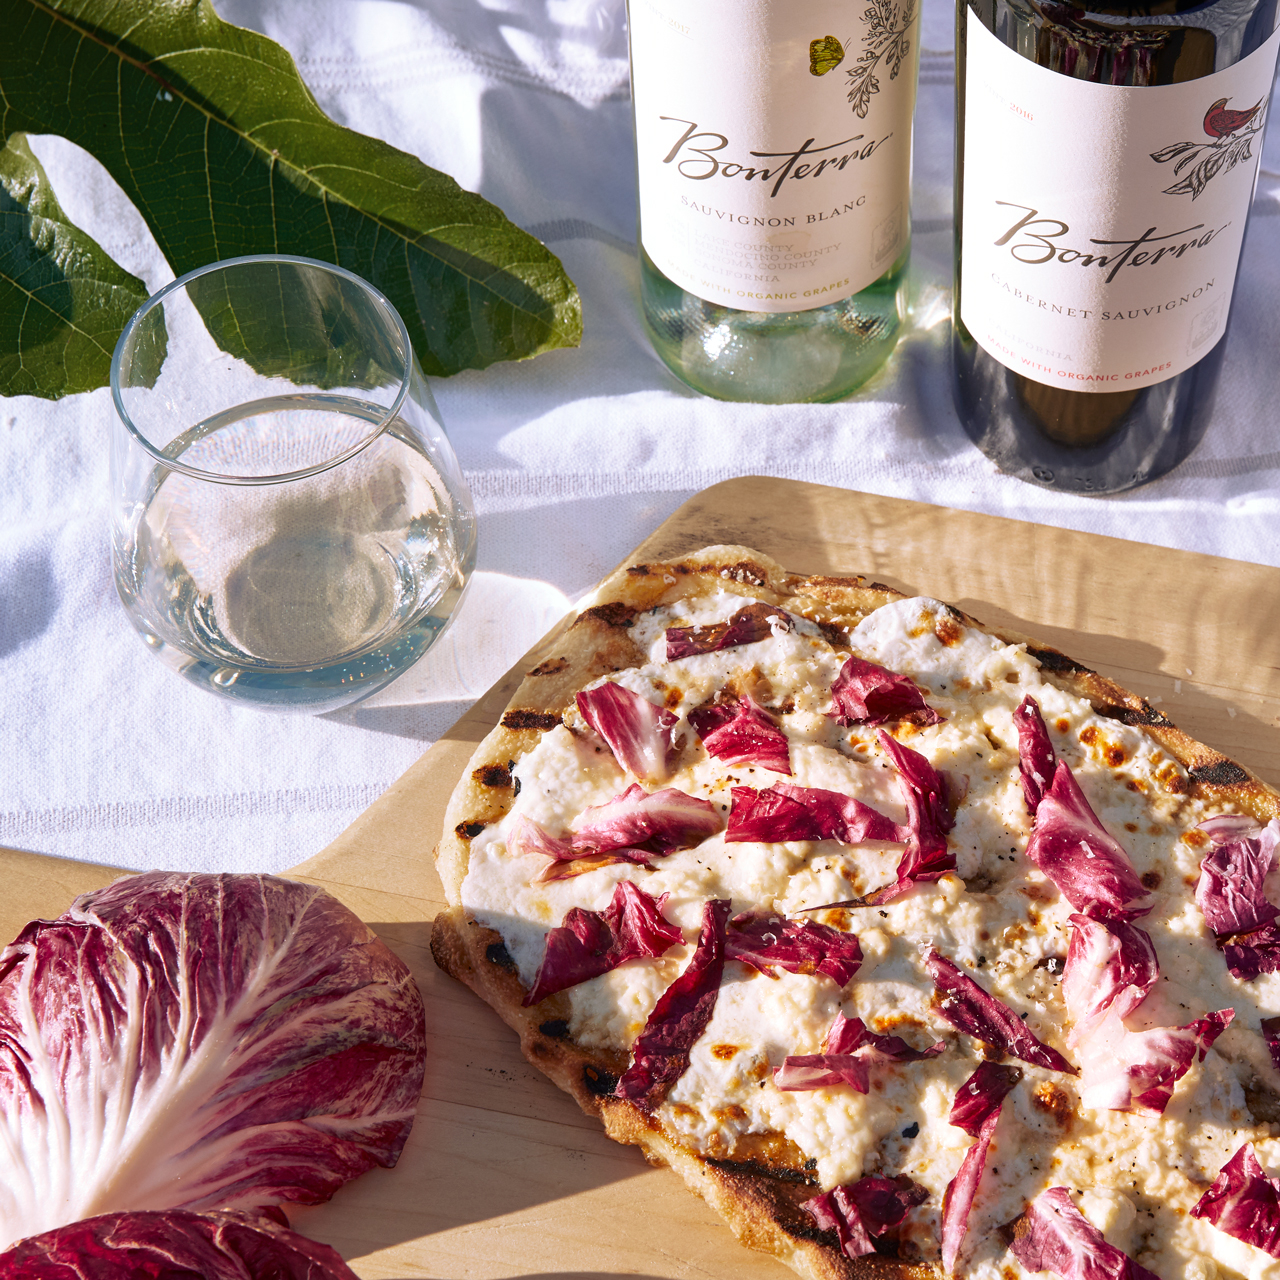 Grilled Pizza Bianca with Radicchio